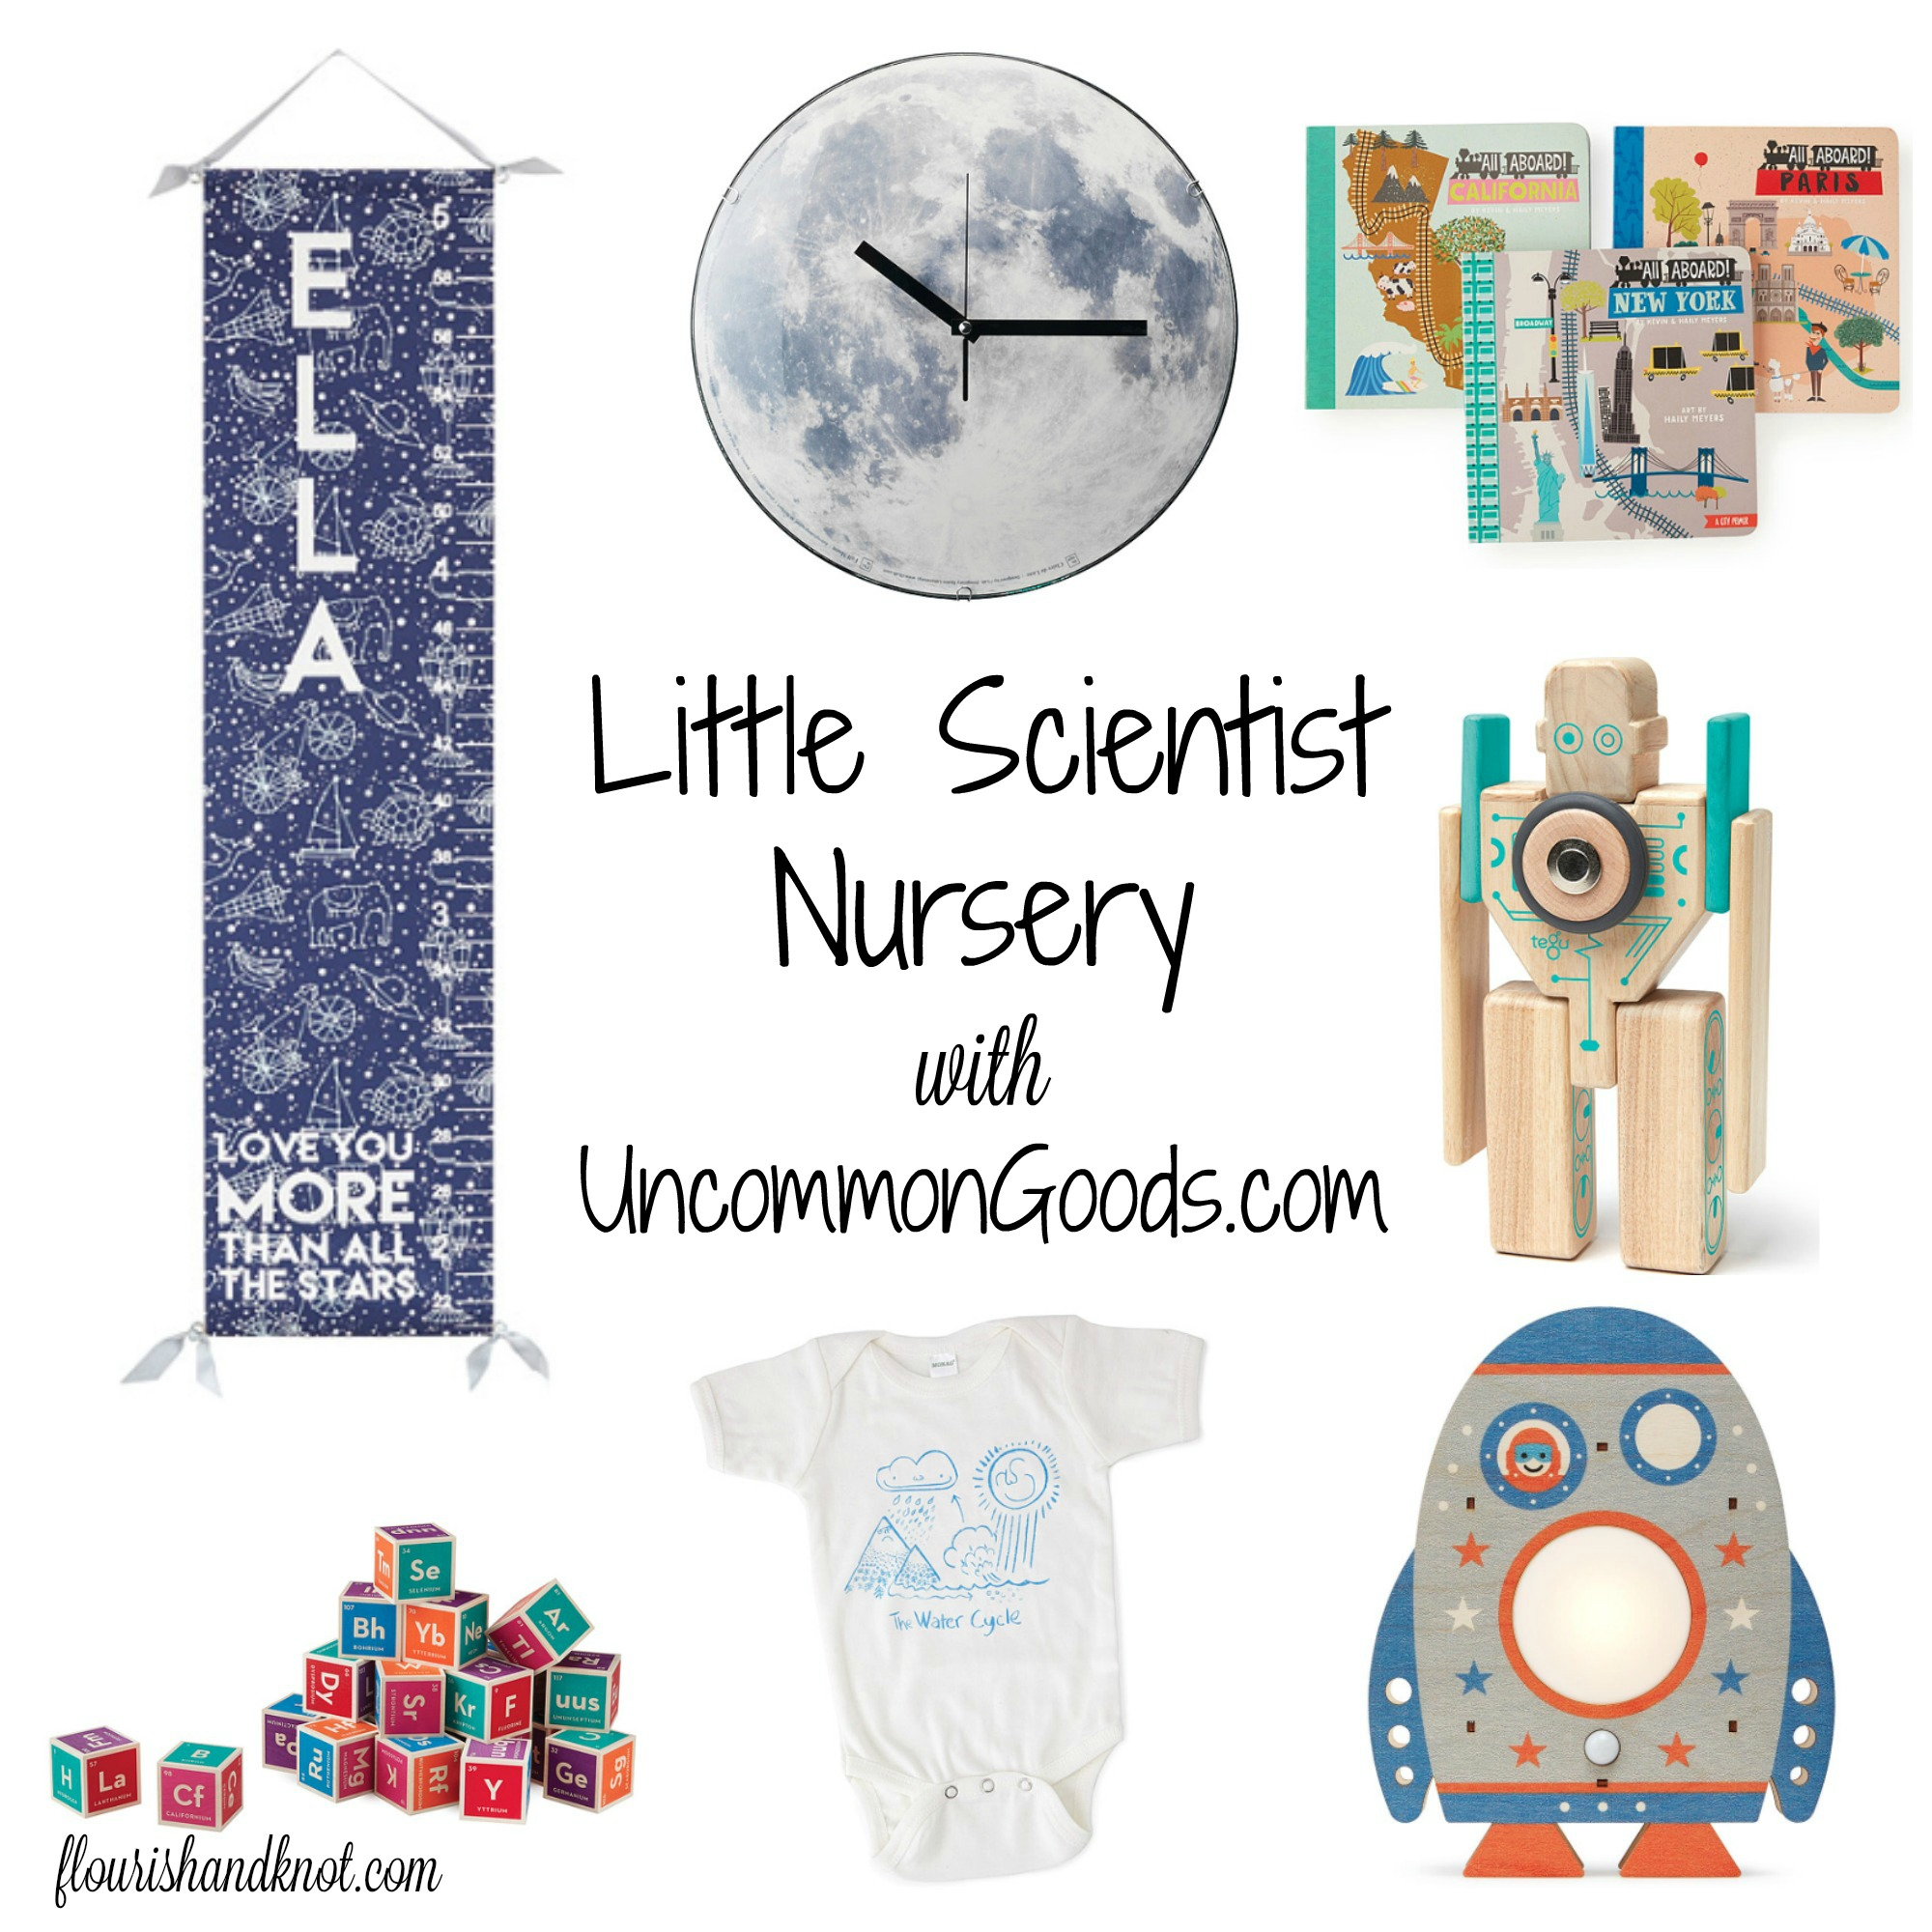 Little Scientist nursery inspiration with UncommonGoods.com | flourishandknot.com